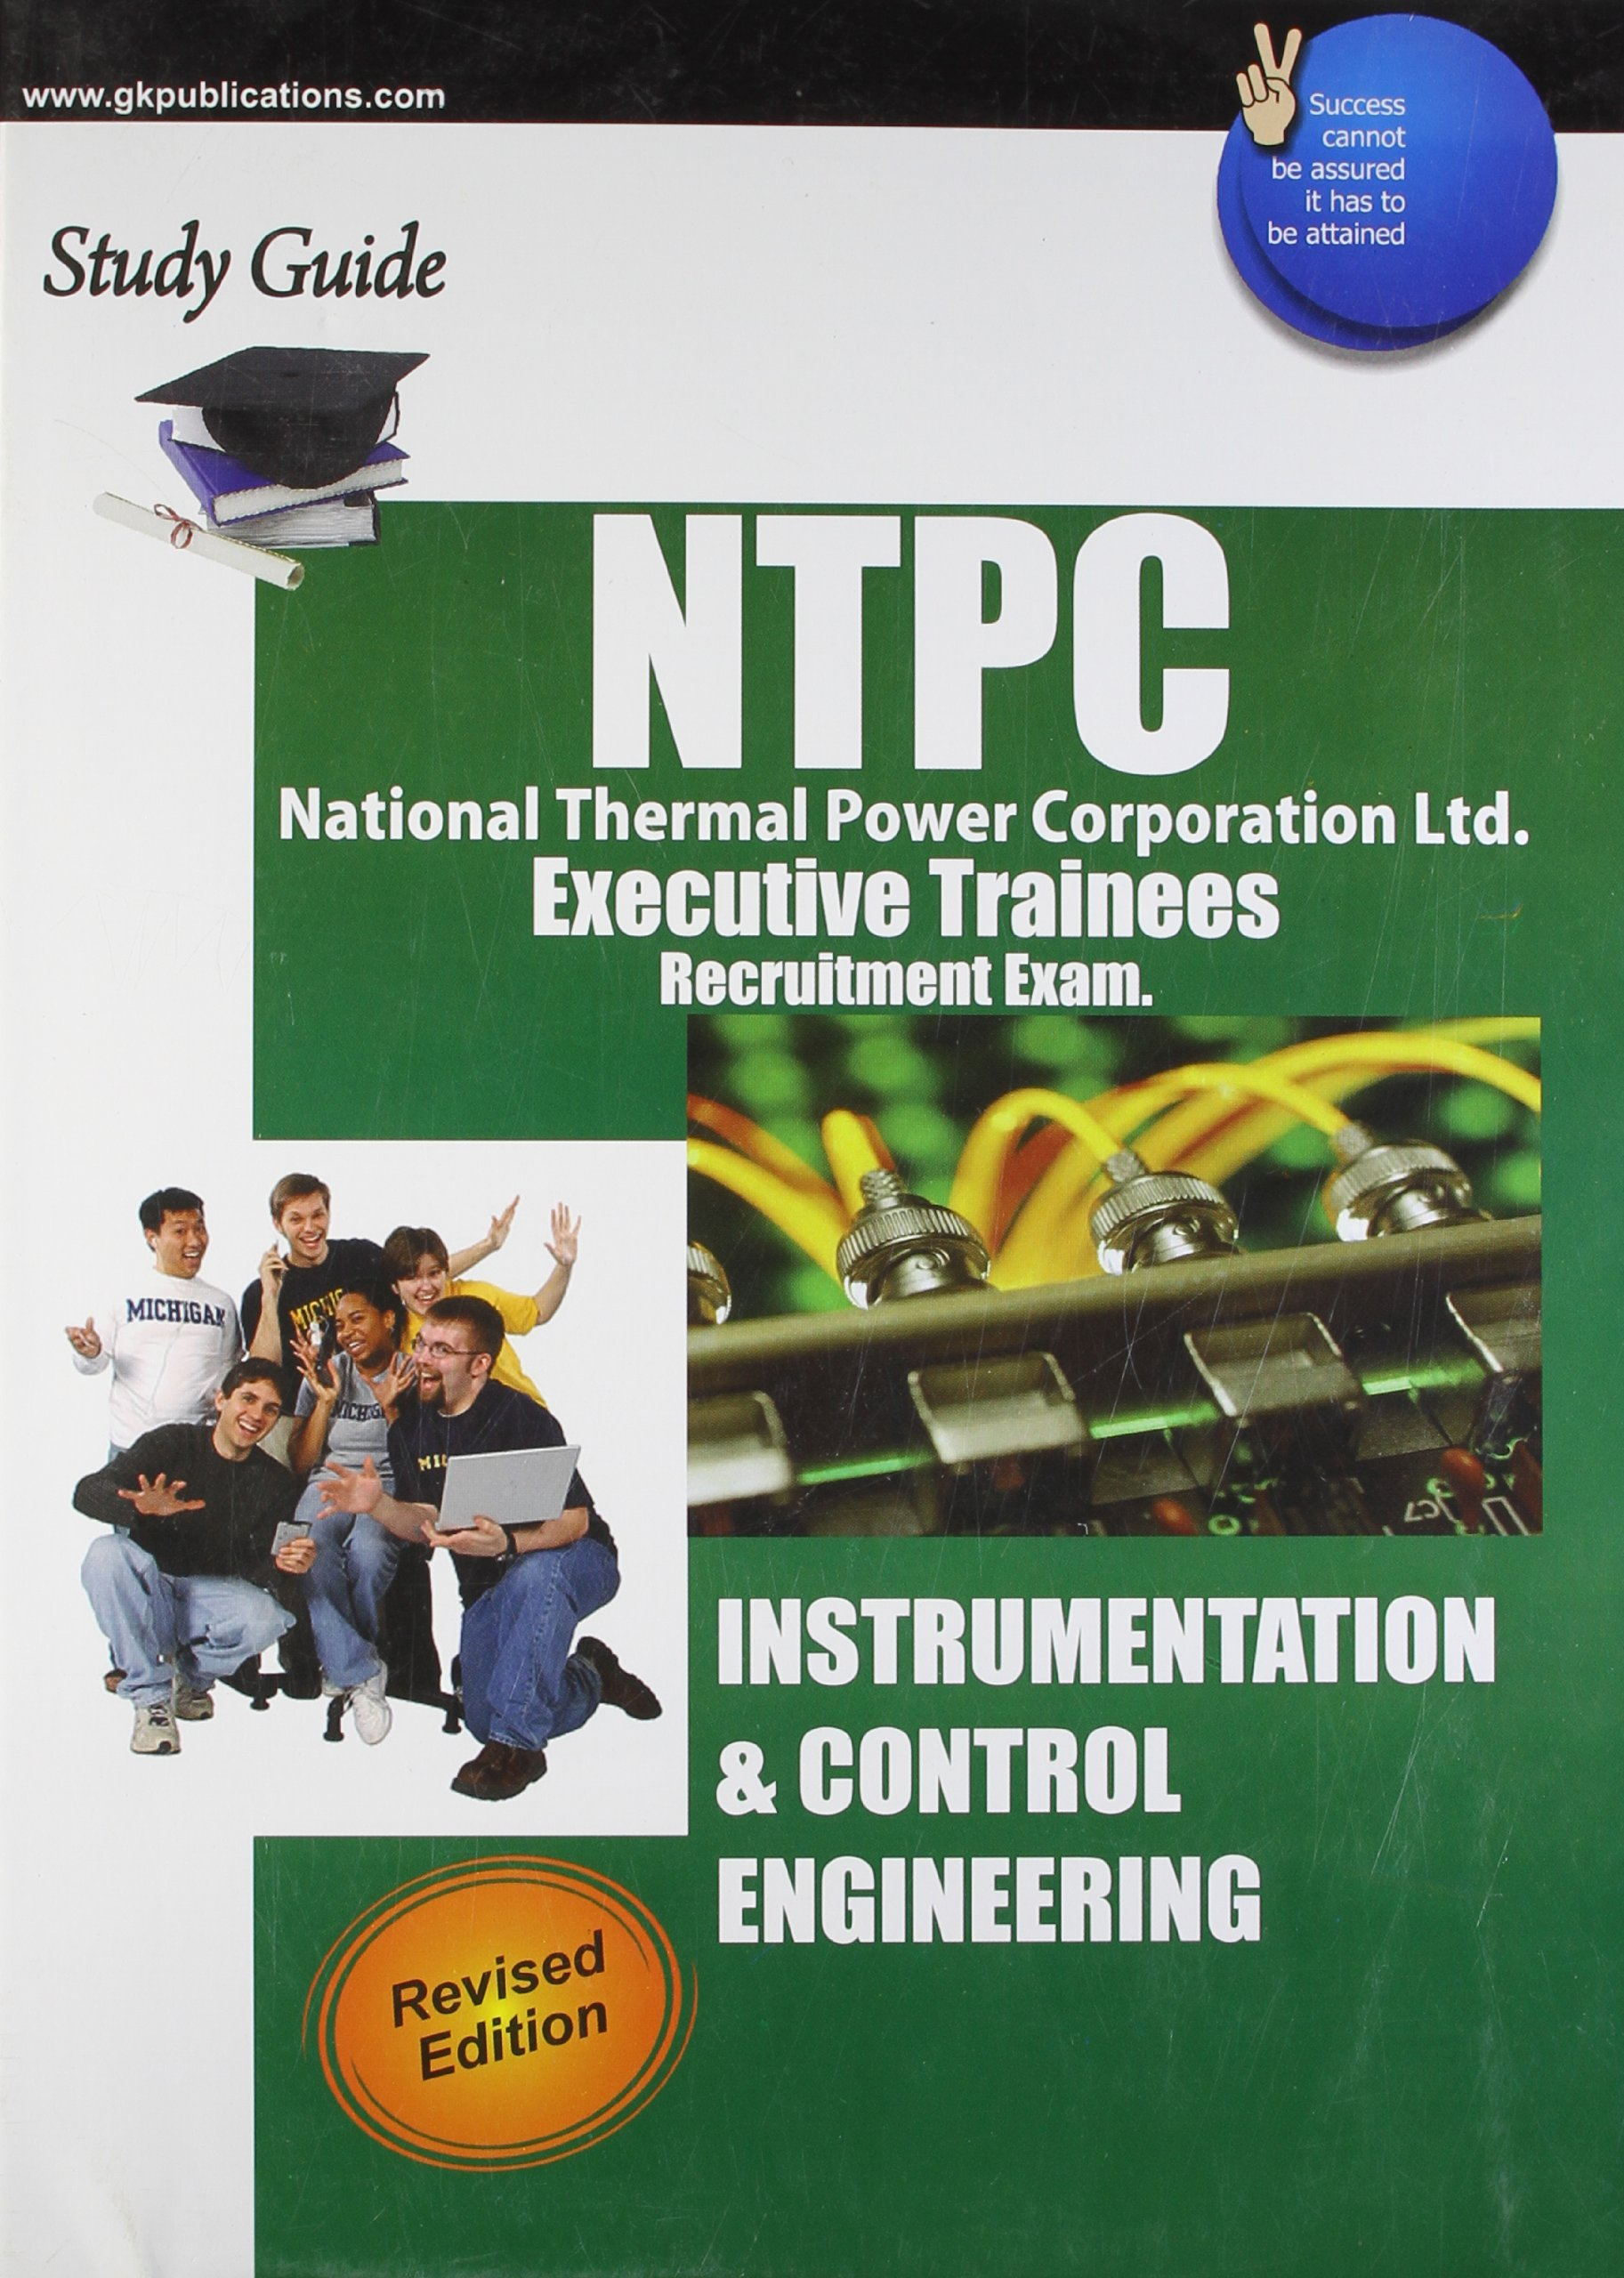 buy guide to ntpc instrumentation control engg book online at low rh amazon in Guide to Buying Bitcoins Guide to Dim Sum